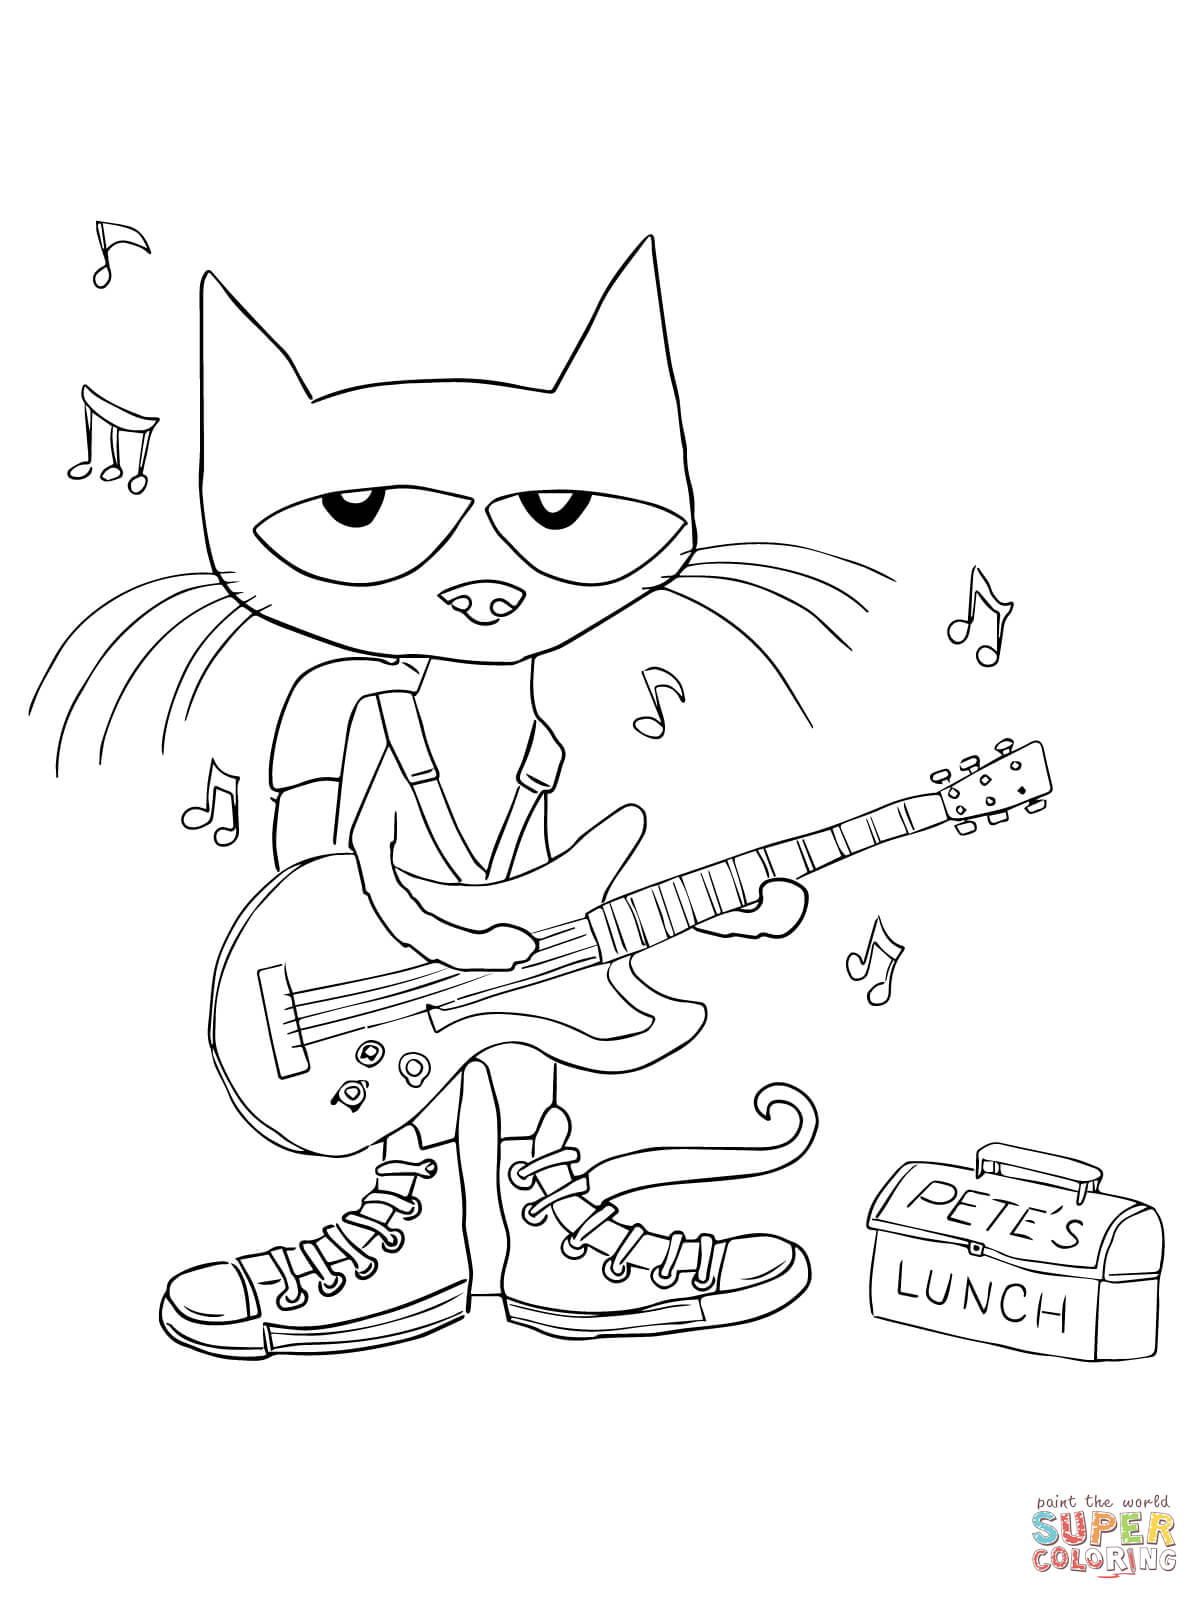 pete-the-cat-rocking-in-my-school-shoes-coloring-page.jpg